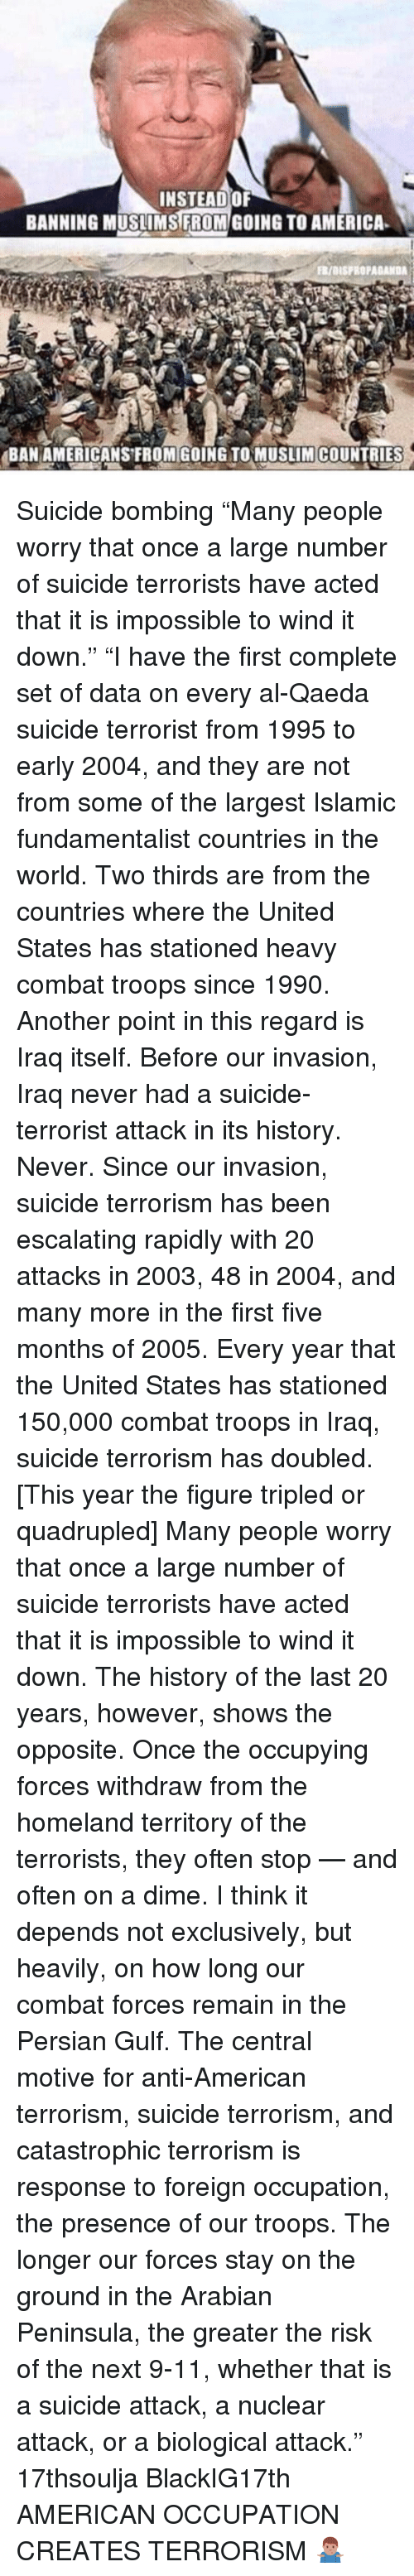 "9/11, Memes, and Homeland: INSTEAD OF  BANNING MUSLIMS FROM GOING TO AMERICA  FR/aISFROPAGANDA  BAN AMERICANS FROM GOING TO MUSLIM COUNTRIES Suicide bombing ""Many people worry that once a large number of suicide terrorists have acted that it is impossible to wind it down."" ""I have the first complete set of data on every al-Qaeda suicide terrorist from 1995 to early 2004, and they are not from some of the largest Islamic fundamentalist countries in the world. Two thirds are from the countries where the United States has stationed heavy combat troops since 1990. Another point in this regard is Iraq itself. Before our invasion, Iraq never had a suicide-terrorist attack in its history. Never. Since our invasion, suicide terrorism has been escalating rapidly with 20 attacks in 2003, 48 in 2004, and many more in the first five months of 2005. Every year that the United States has stationed 150,000 combat troops in Iraq, suicide terrorism has doubled. [This year the figure tripled or quadrupled] Many people worry that once a large number of suicide terrorists have acted that it is impossible to wind it down. The history of the last 20 years, however, shows the opposite. Once the occupying forces withdraw from the homeland territory of the terrorists, they often stop — and often on a dime. I think it depends not exclusively, but heavily, on how long our combat forces remain in the Persian Gulf. The central motive for anti-American terrorism, suicide terrorism, and catastrophic terrorism is response to foreign occupation, the presence of our troops. The longer our forces stay on the ground in the Arabian Peninsula, the greater the risk of the next 9-11, whether that is a suicide attack, a nuclear attack, or a biological attack."" 17thsoulja BlackIG17th AMERICAN OCCUPATION CREATES TERRORISM 🤷🏽‍♂️"